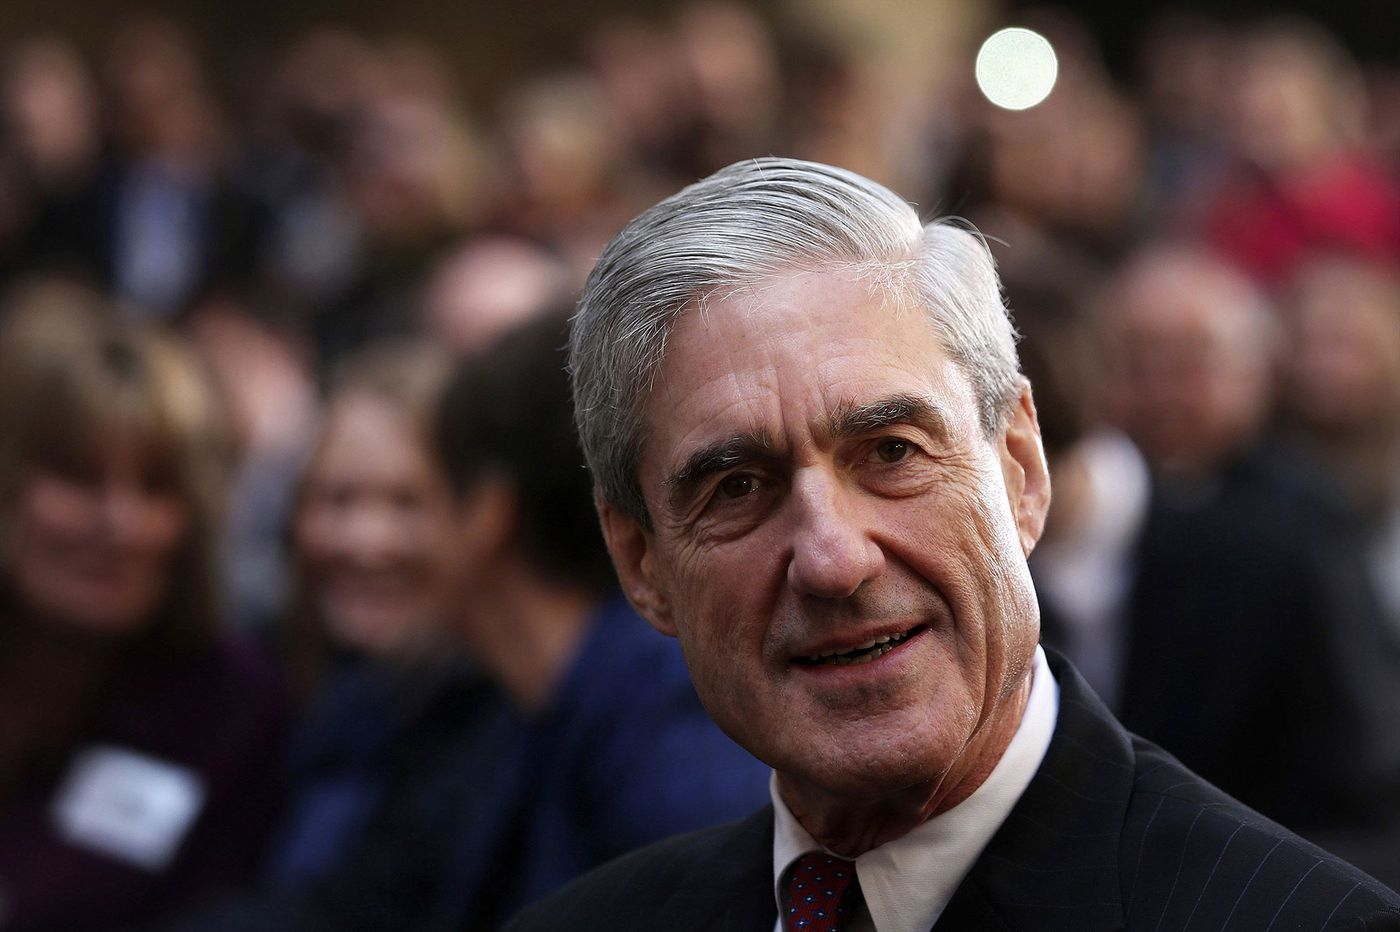 Special counsel Robert Mueller to make 1st public statement about Russian Federation investigation